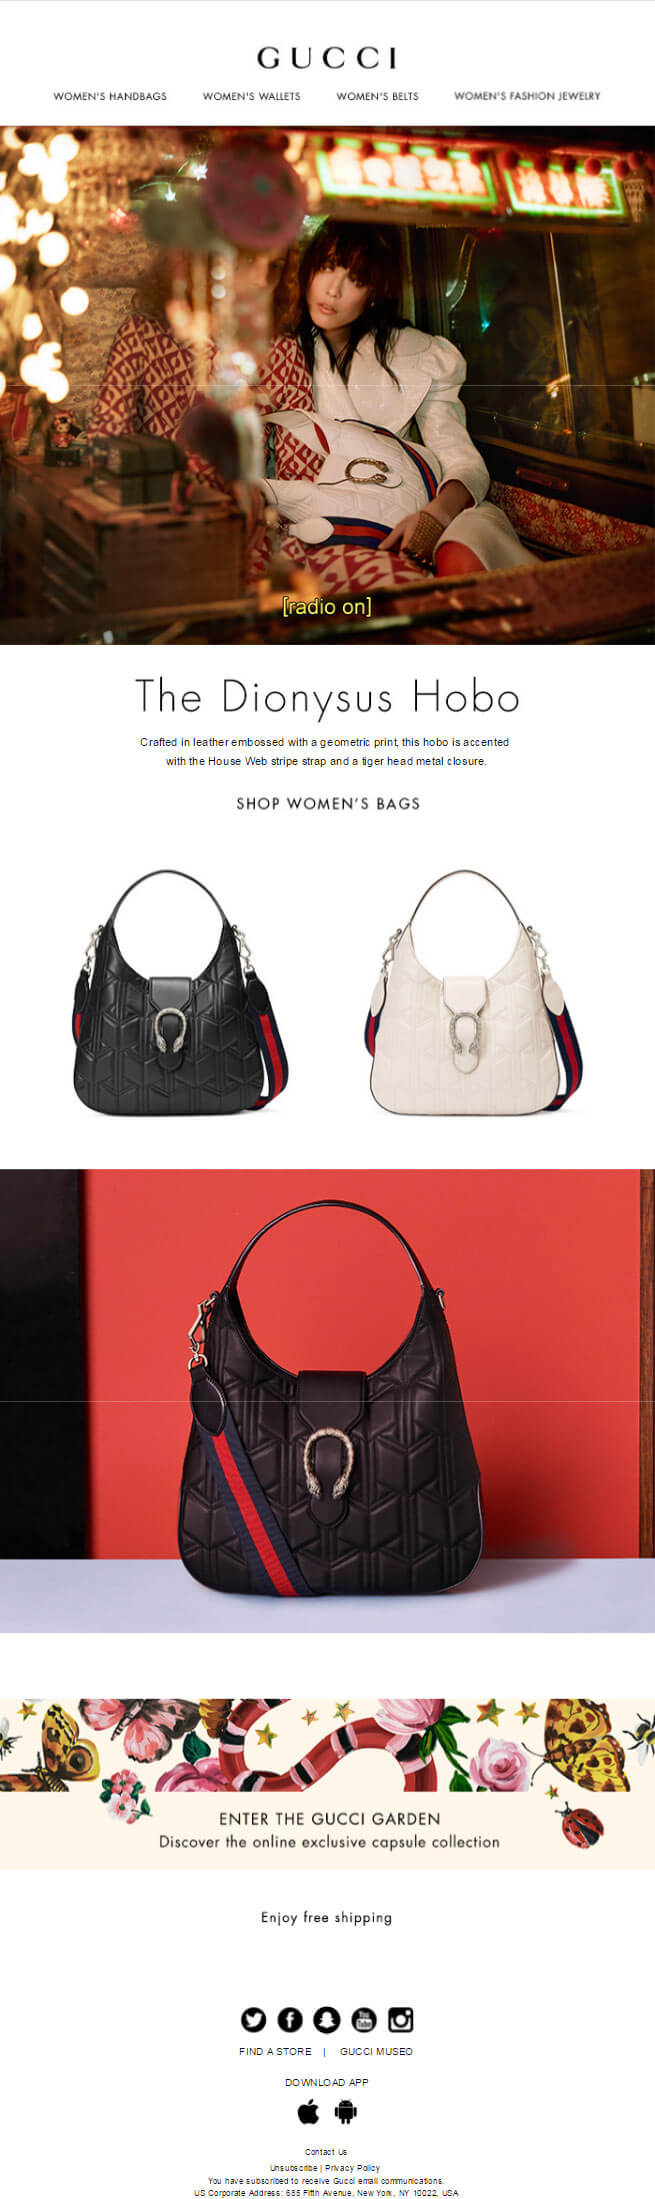 E-COMMERCE-EMAIL-Gucci_Email